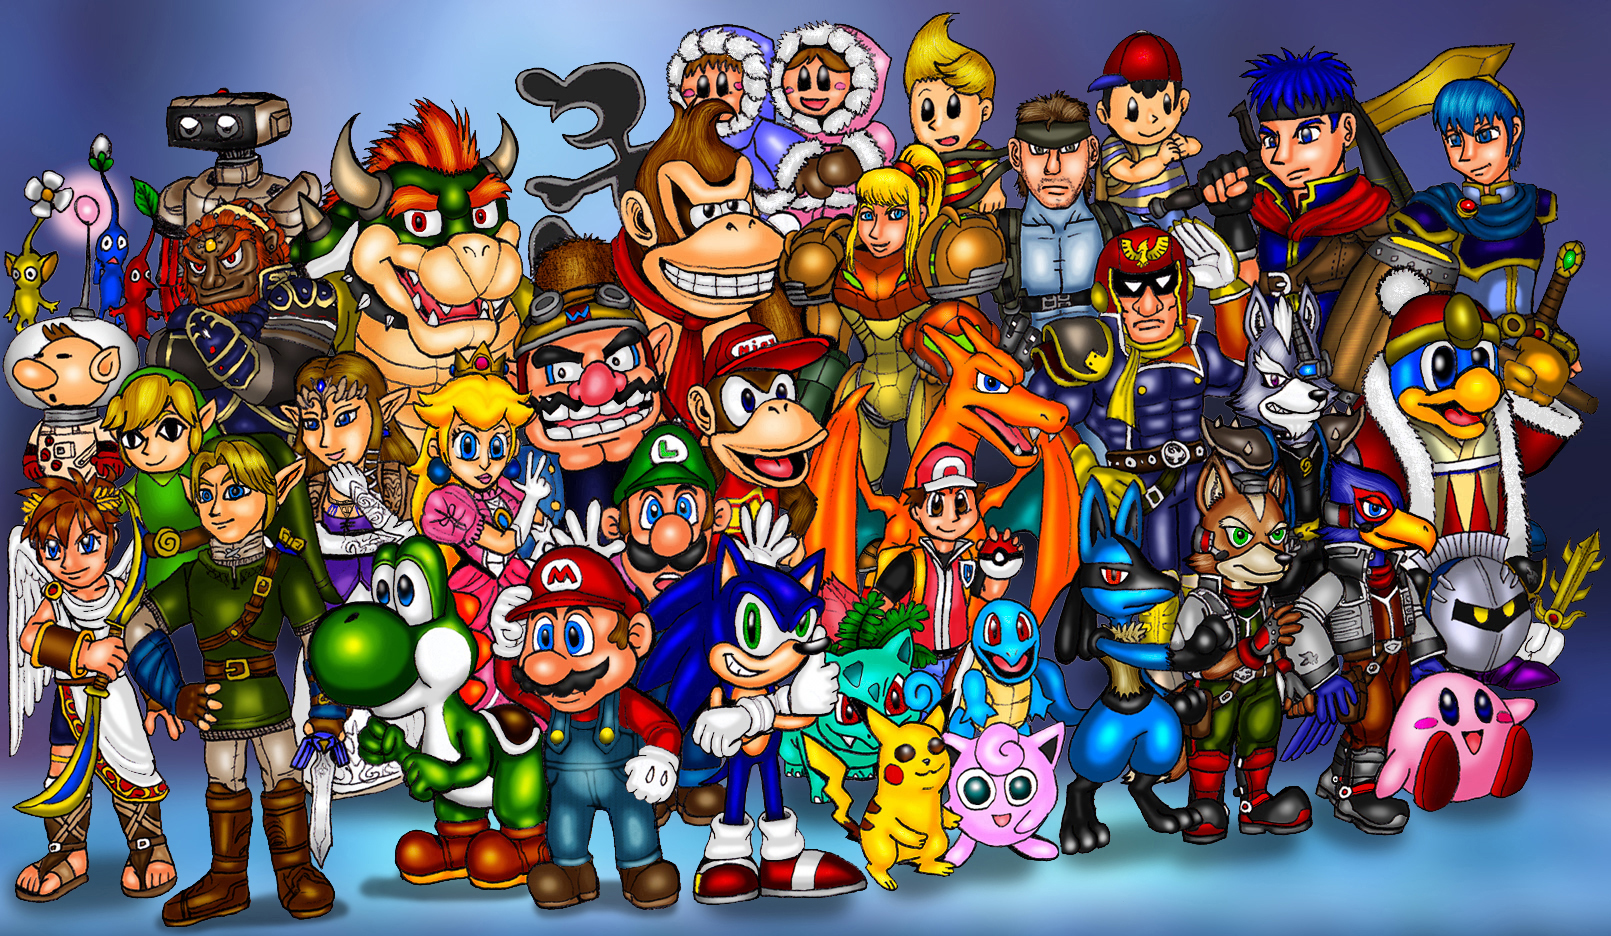 1611x936 Vixdojo Fanart Super Smash Bros